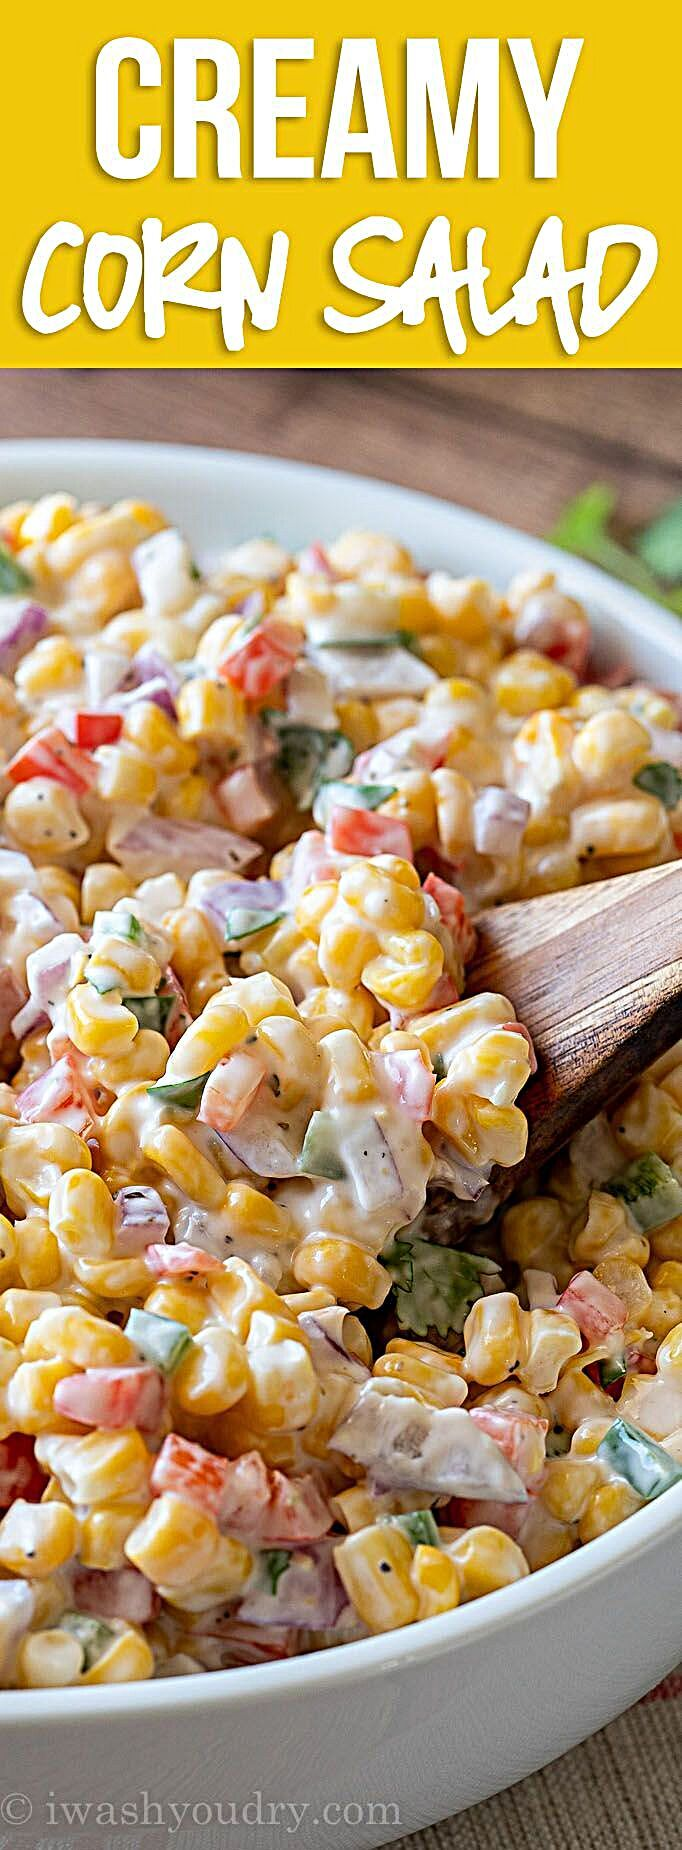 This cool and Creamy Corn Salad Recipe is filled with delicious summer flavors in a creamy sauce, ma...